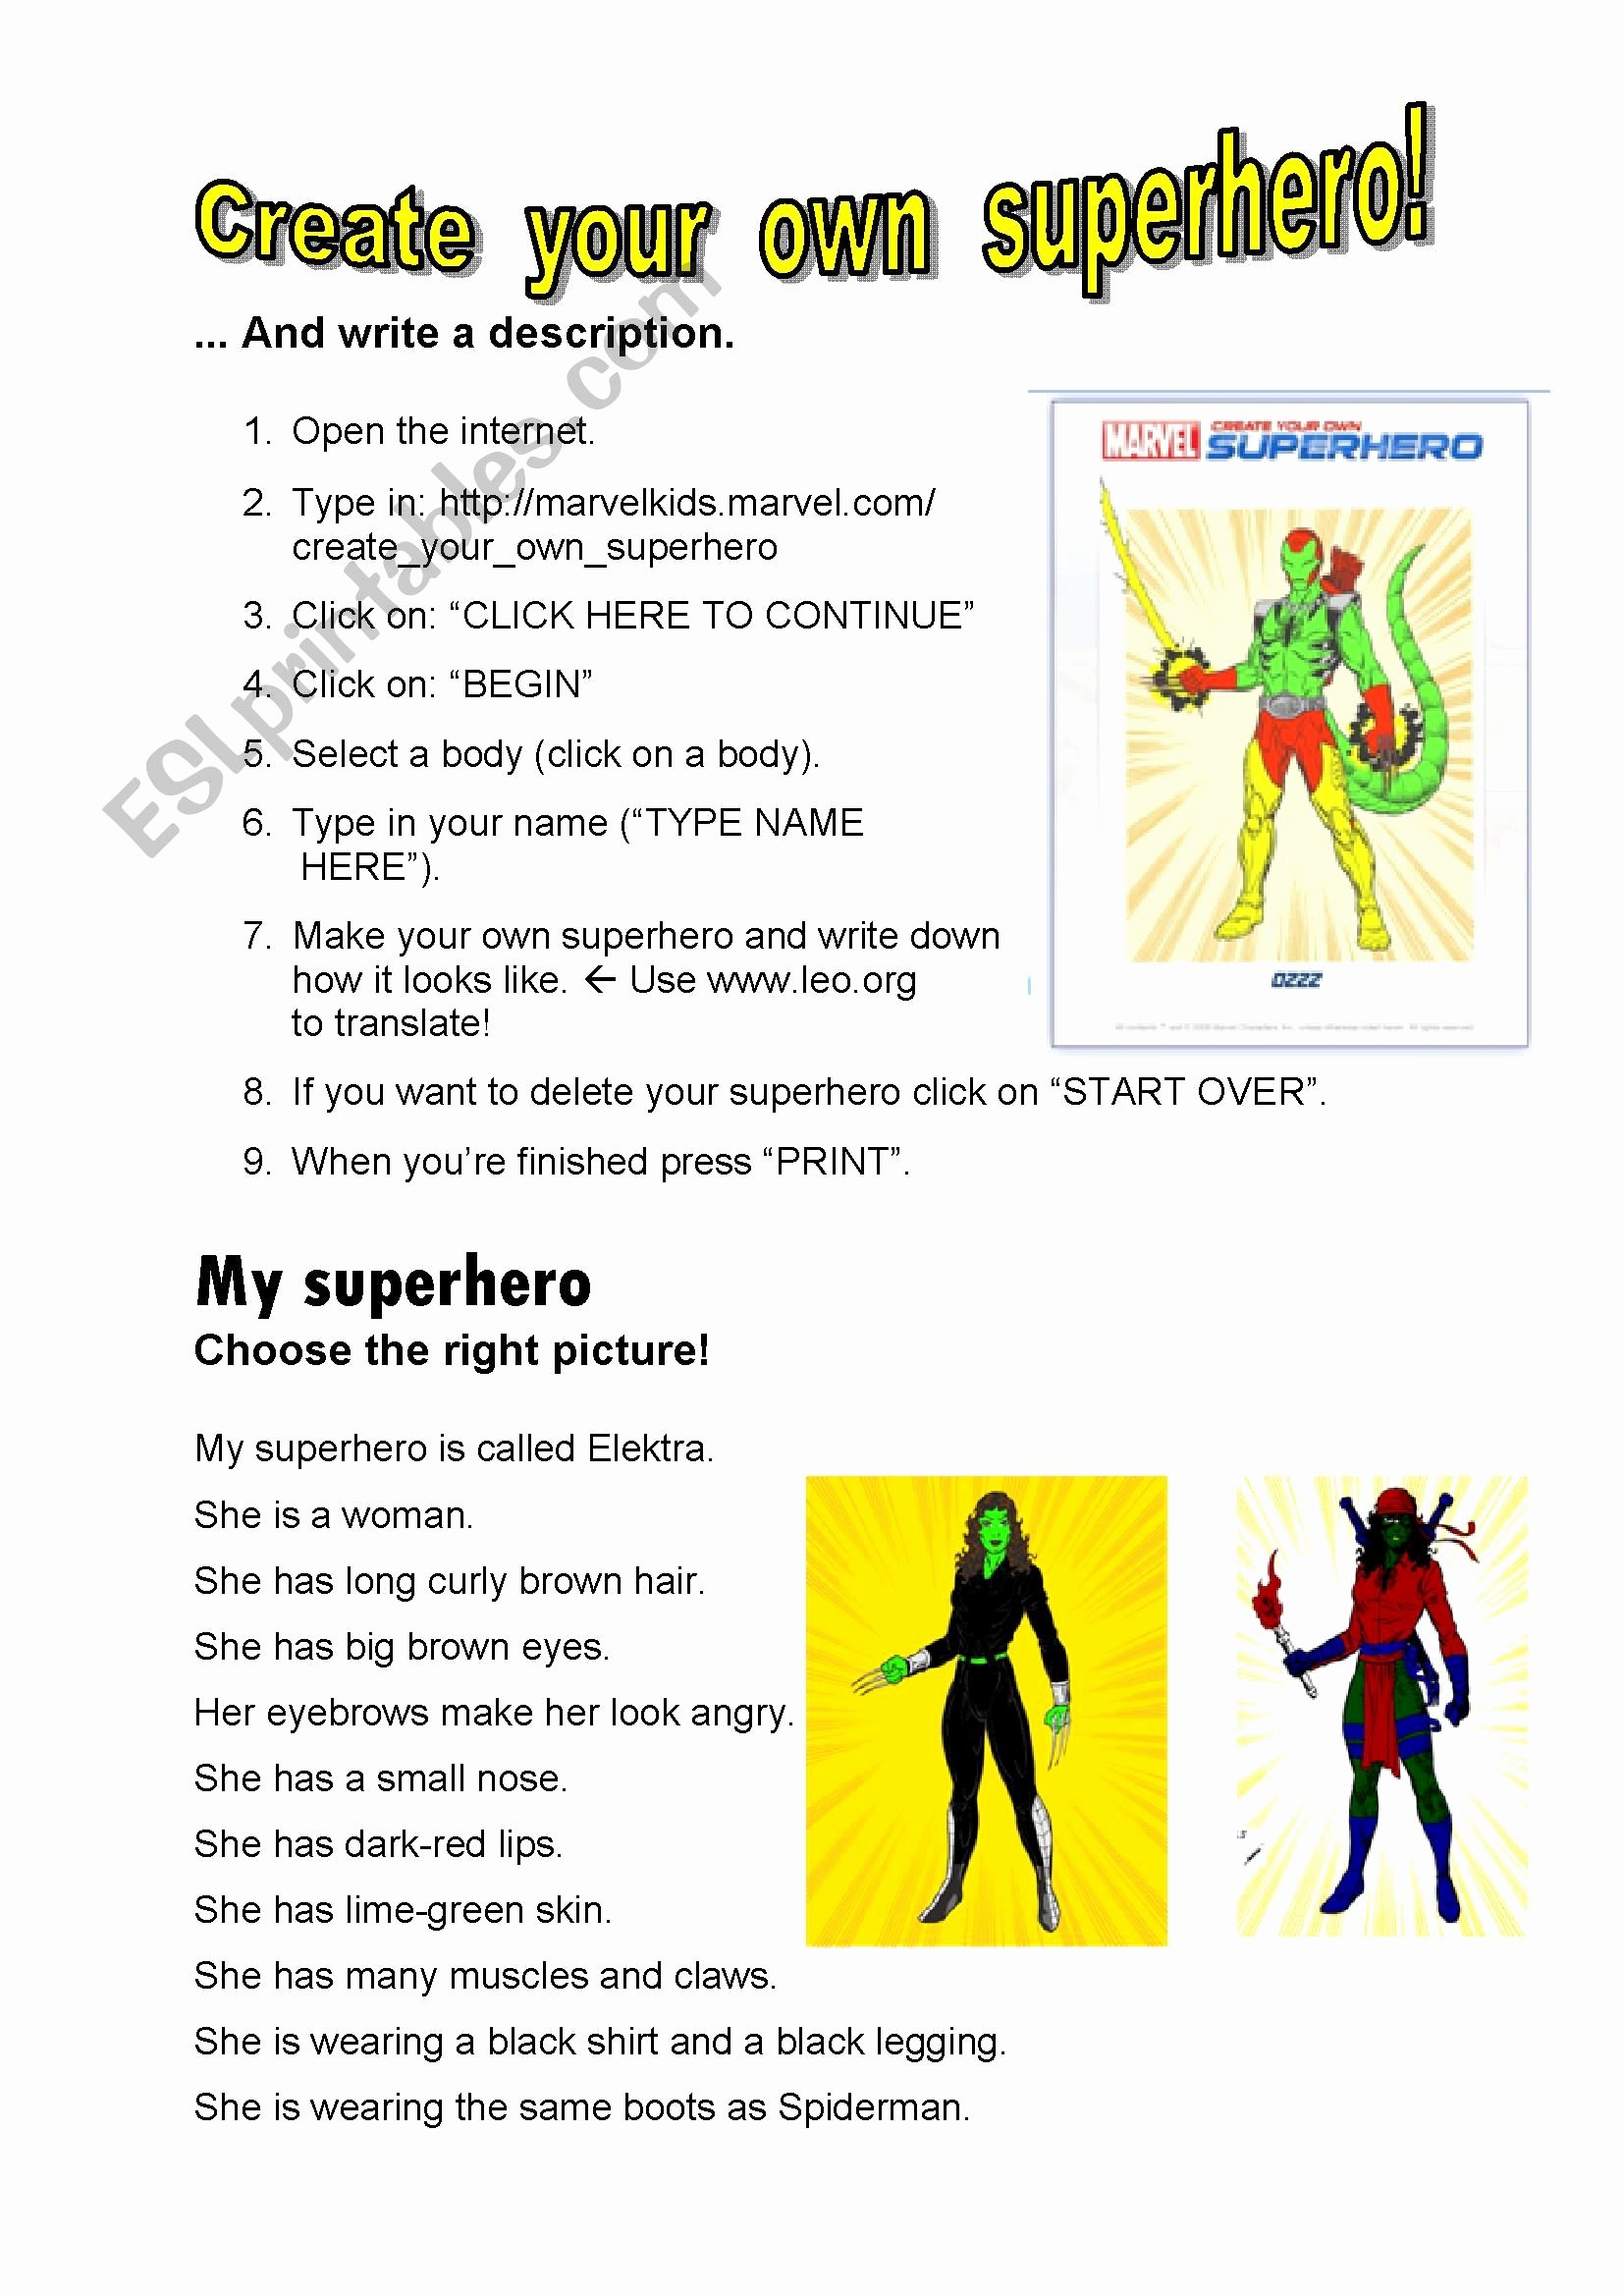 Design Your Own Superhero Worksheet Best Of Create Your Own Superhero Key Esl Worksheet by Dietze